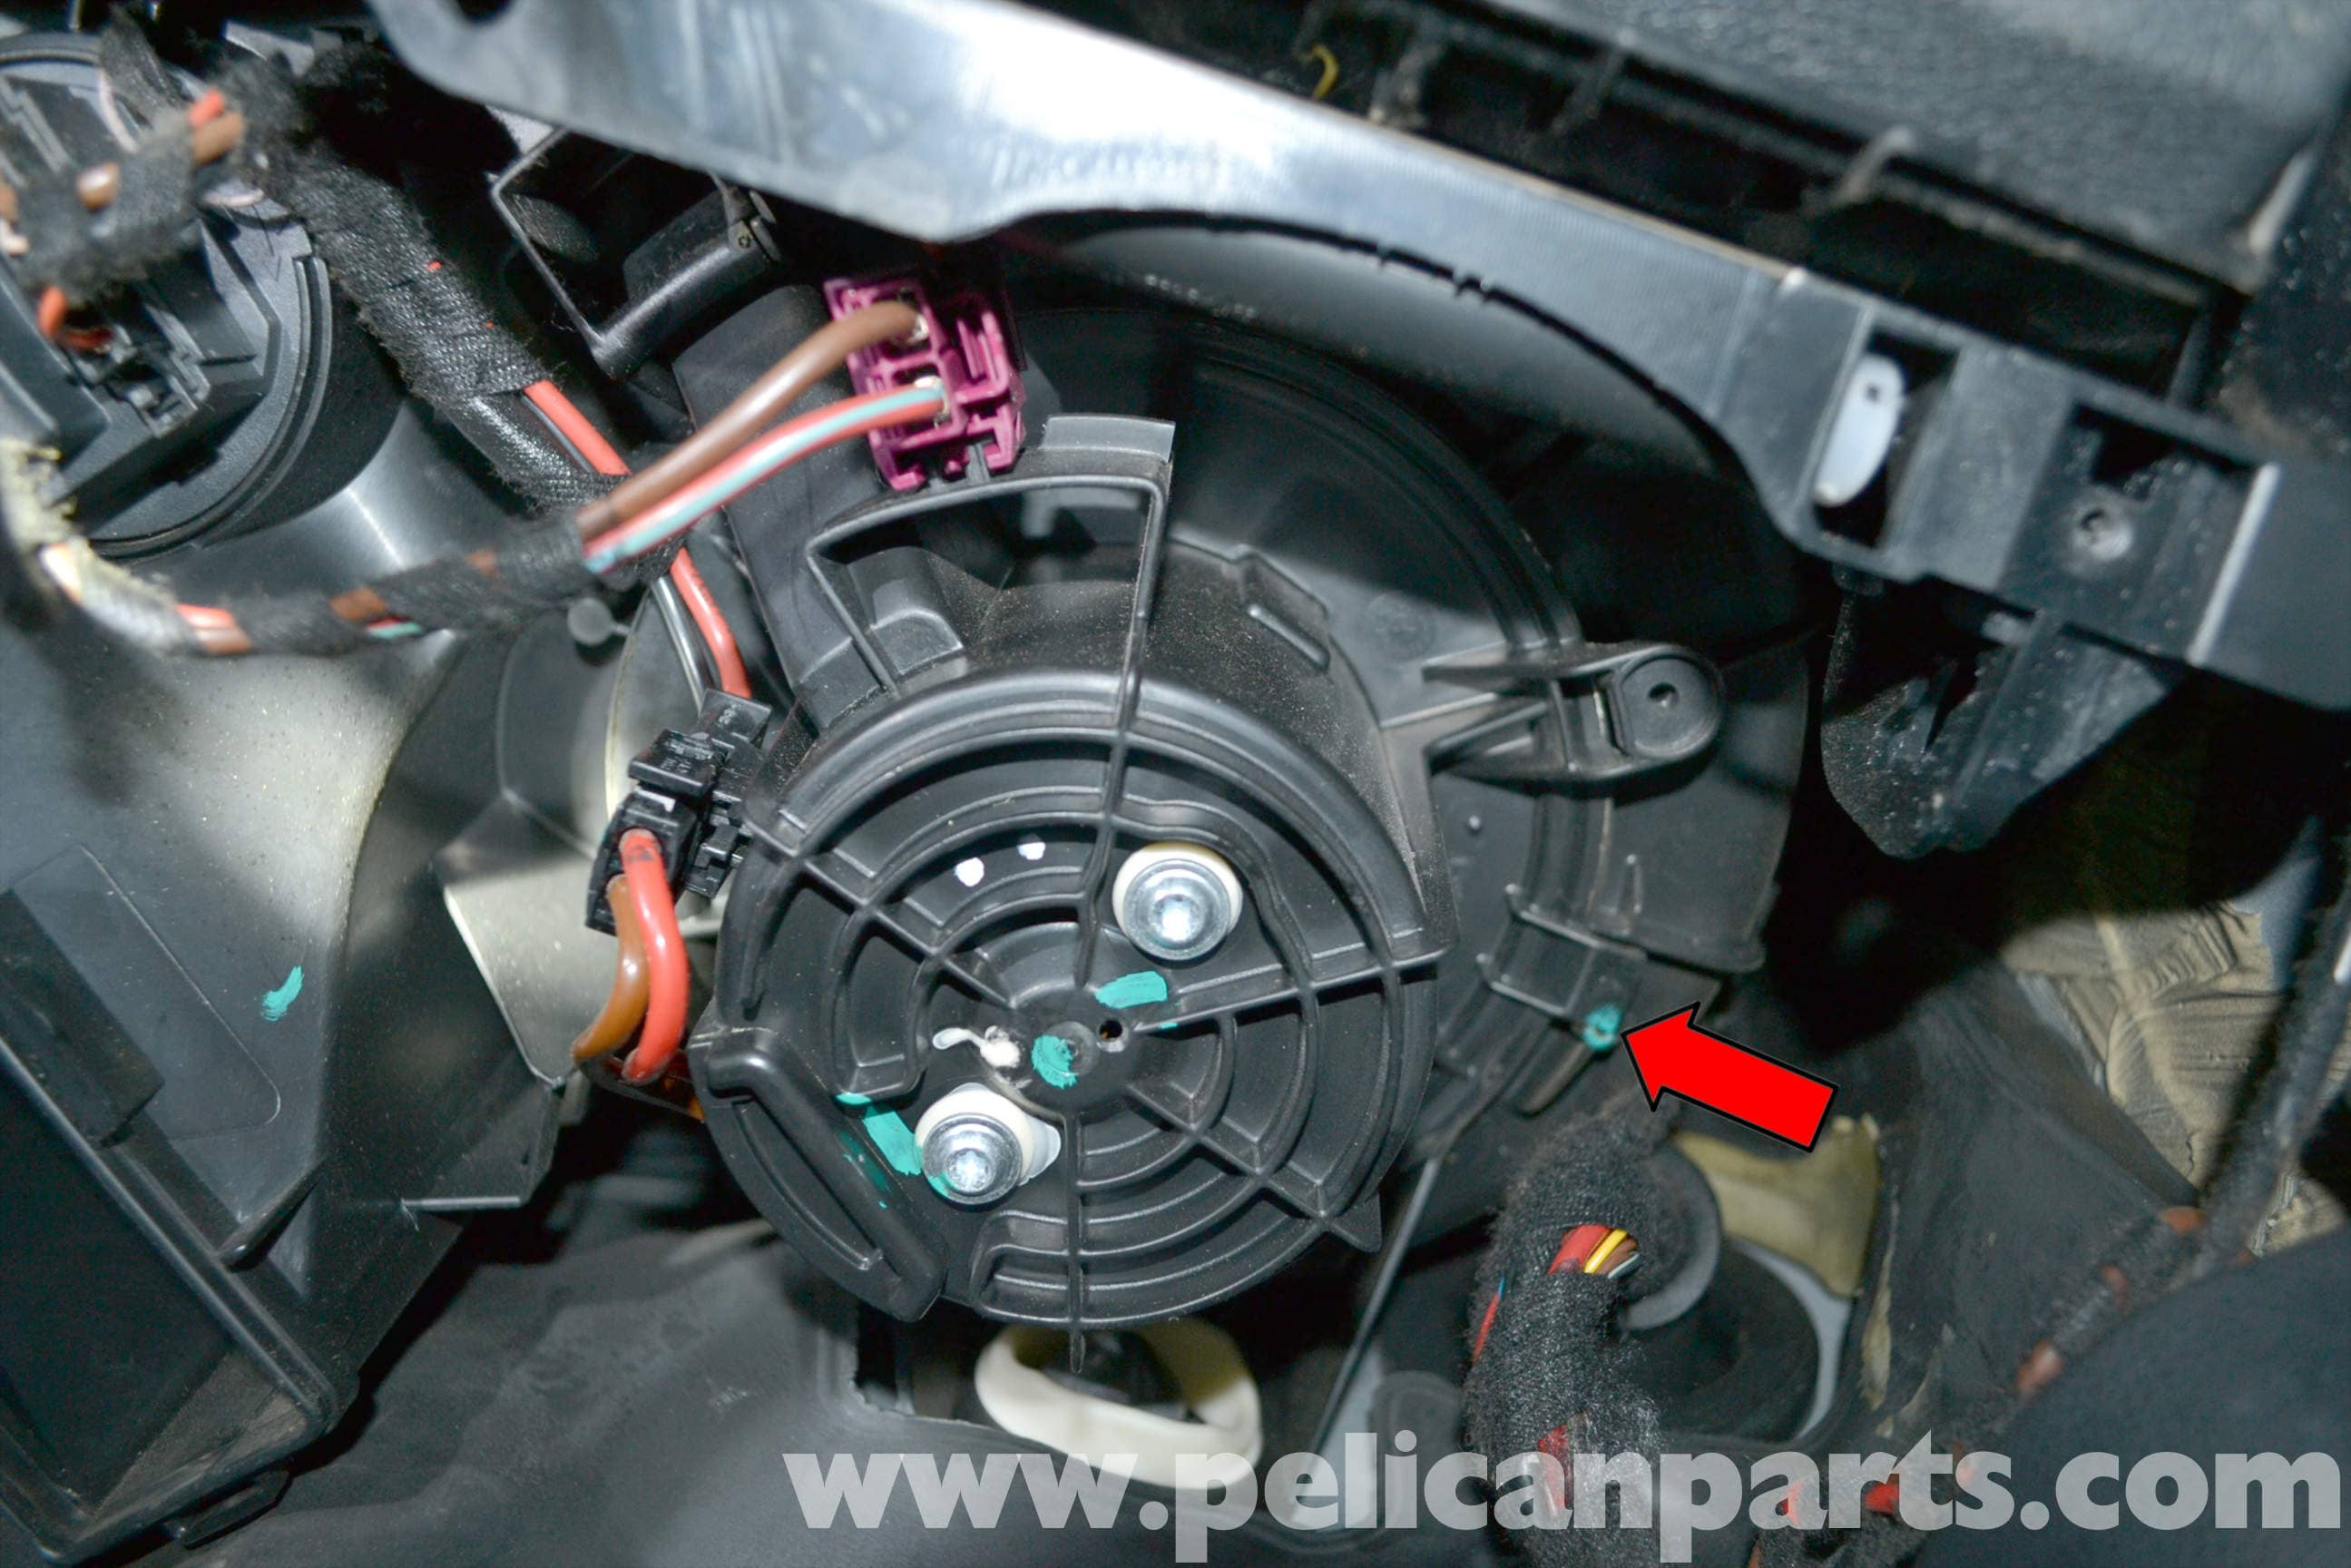 pic06 mercedes benz w204 blower motor replacement (2008 2014) c250 Mercedes C-Class Fuse Box Diagram at bayanpartner.co